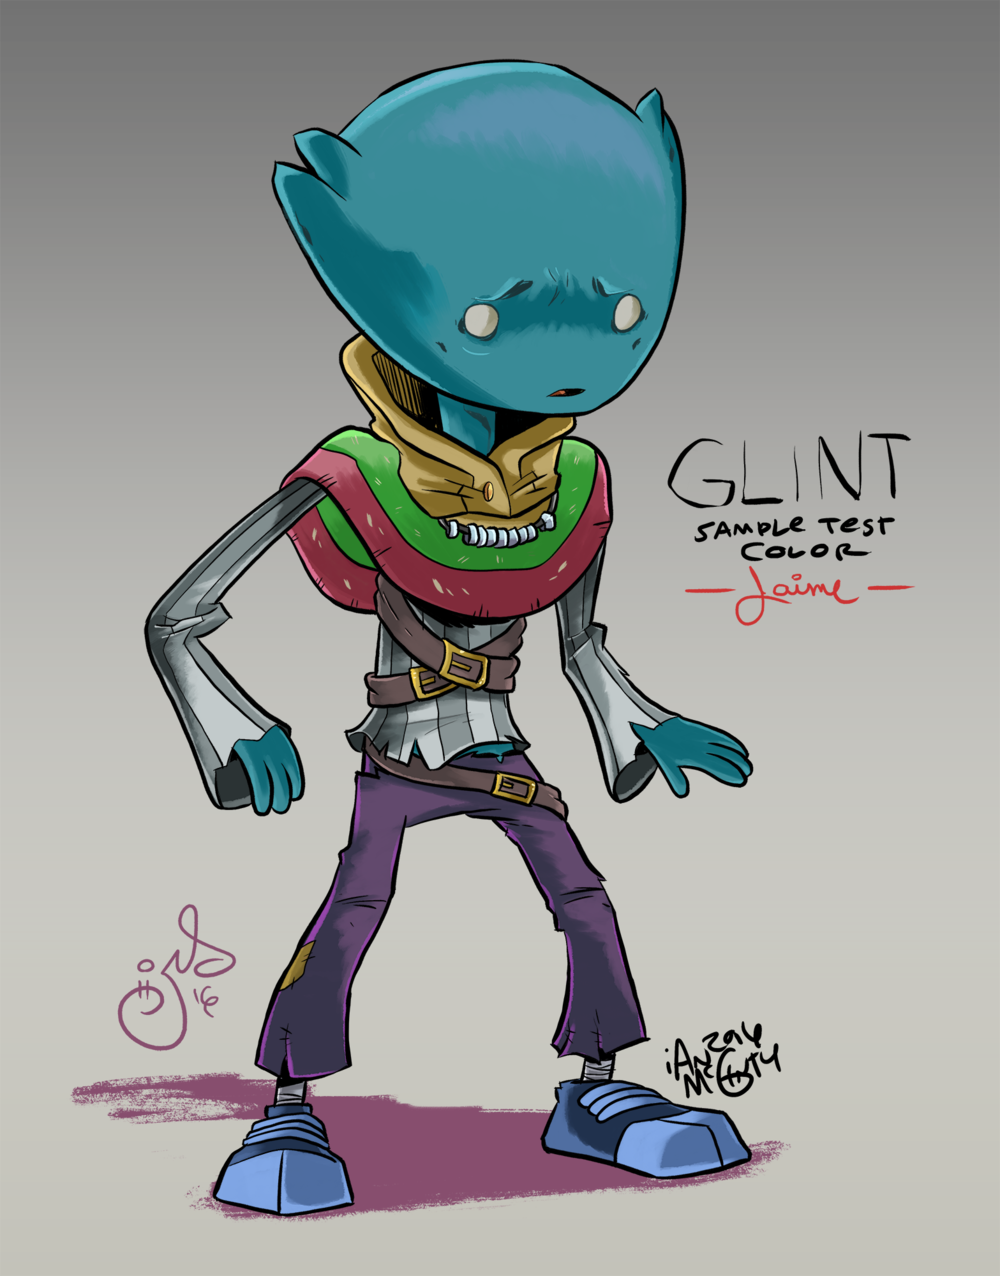 COLOR TEST - LOON